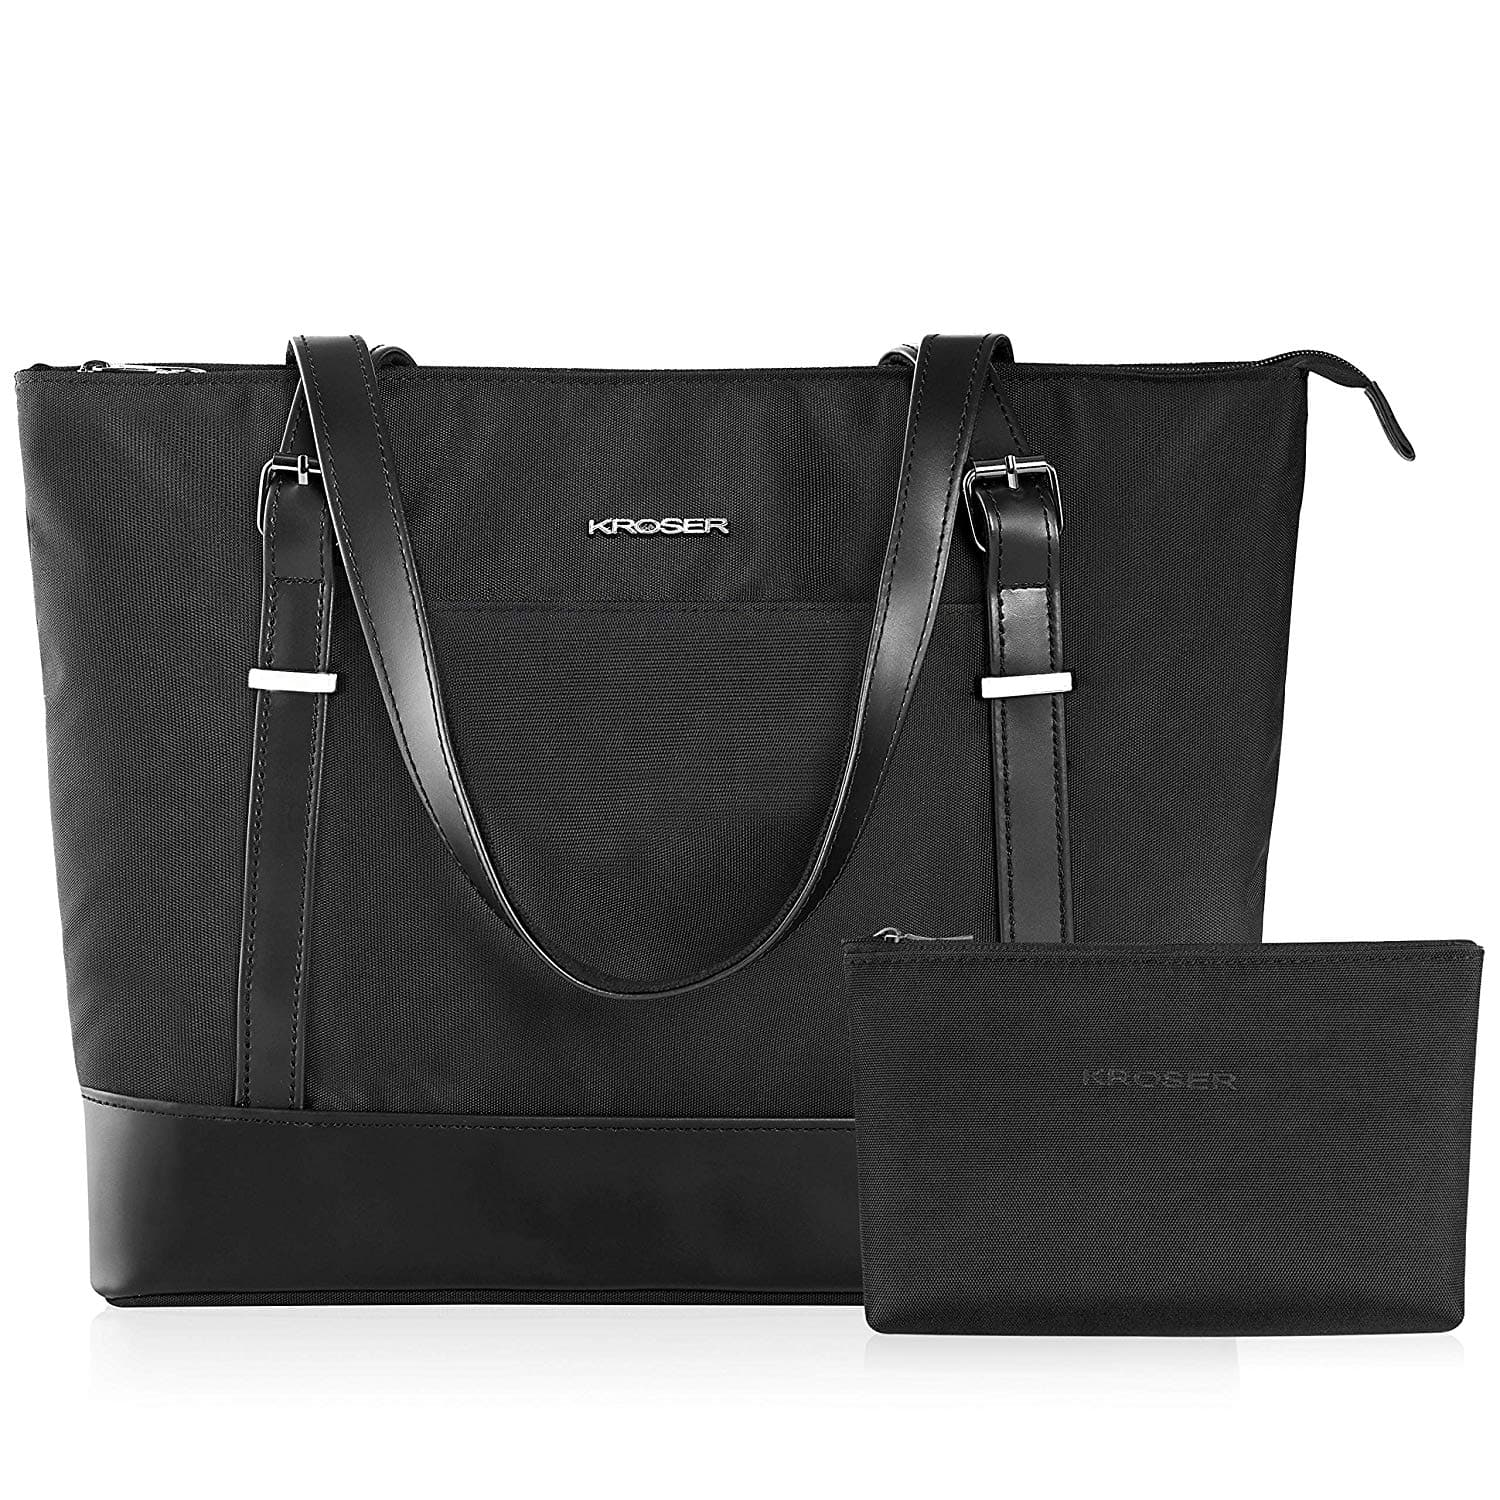 15.6 Inch Laptop Water-Repellent Nylon Handbag,  $17.54